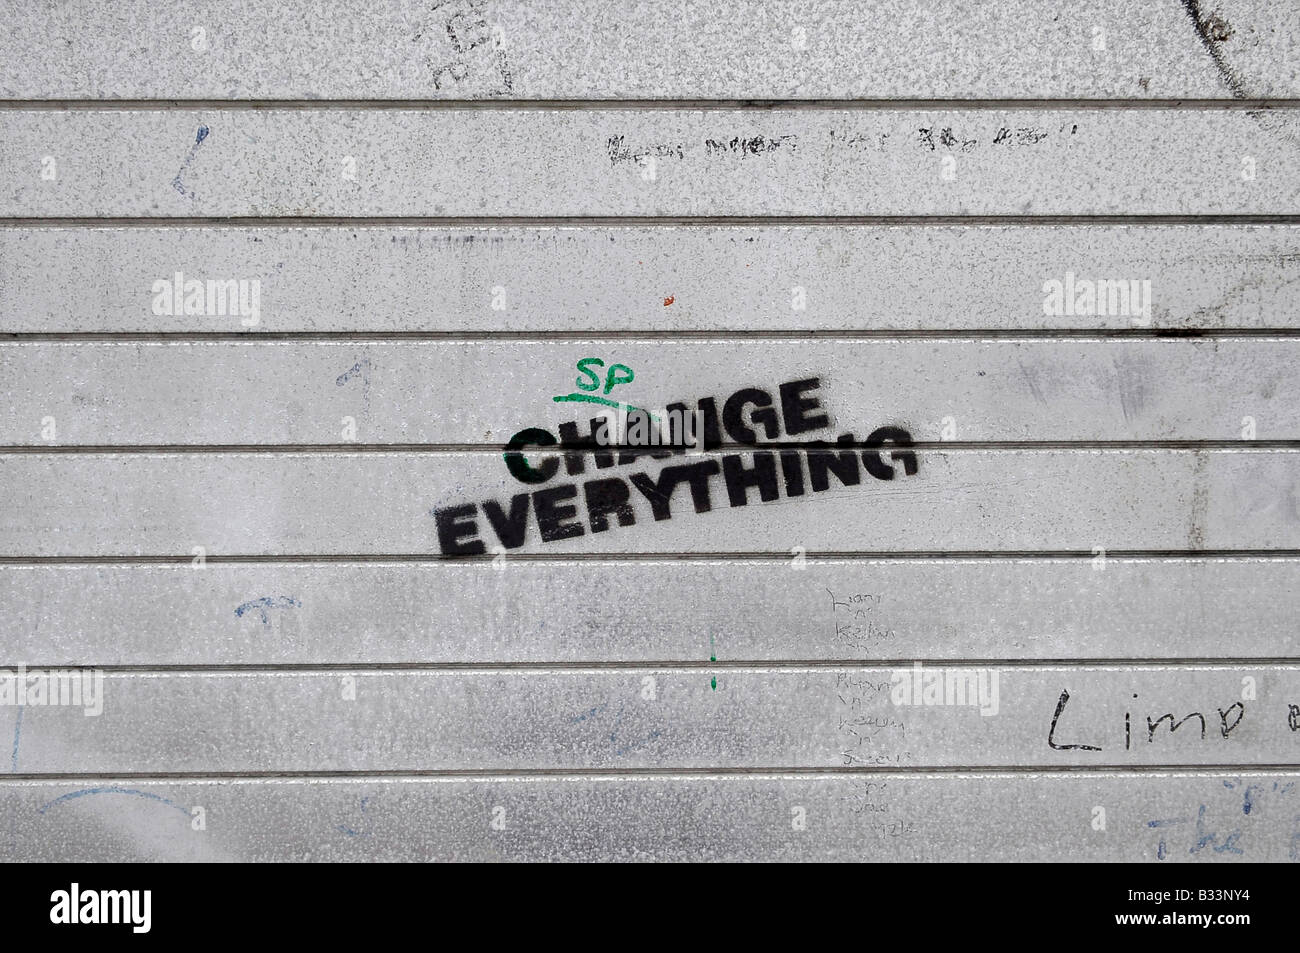 Composite Image Of Stencil Graffiti >> Change Everything Stencil Graffiti Shutters Permanent Revolution